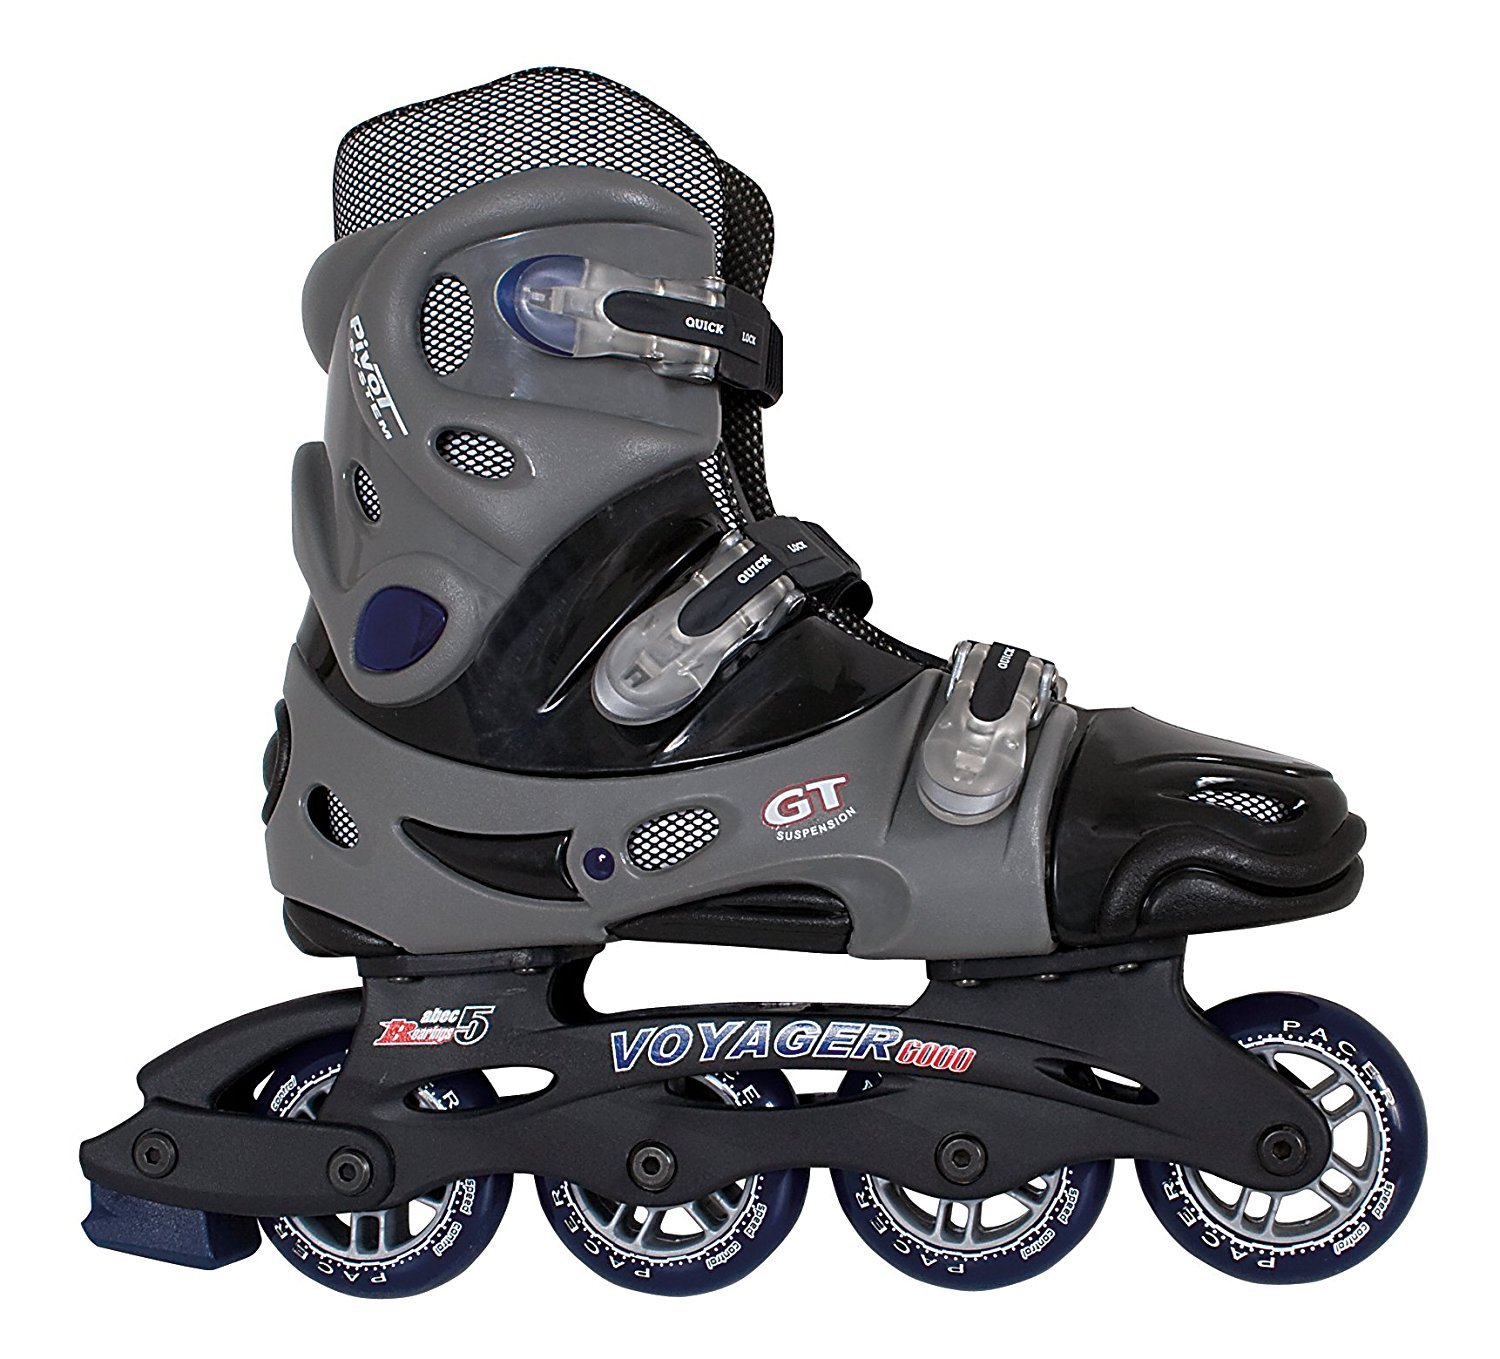 Pacer Voyager Inline Skates - Mens 11 / Ladies 12 by Skate Out Loud